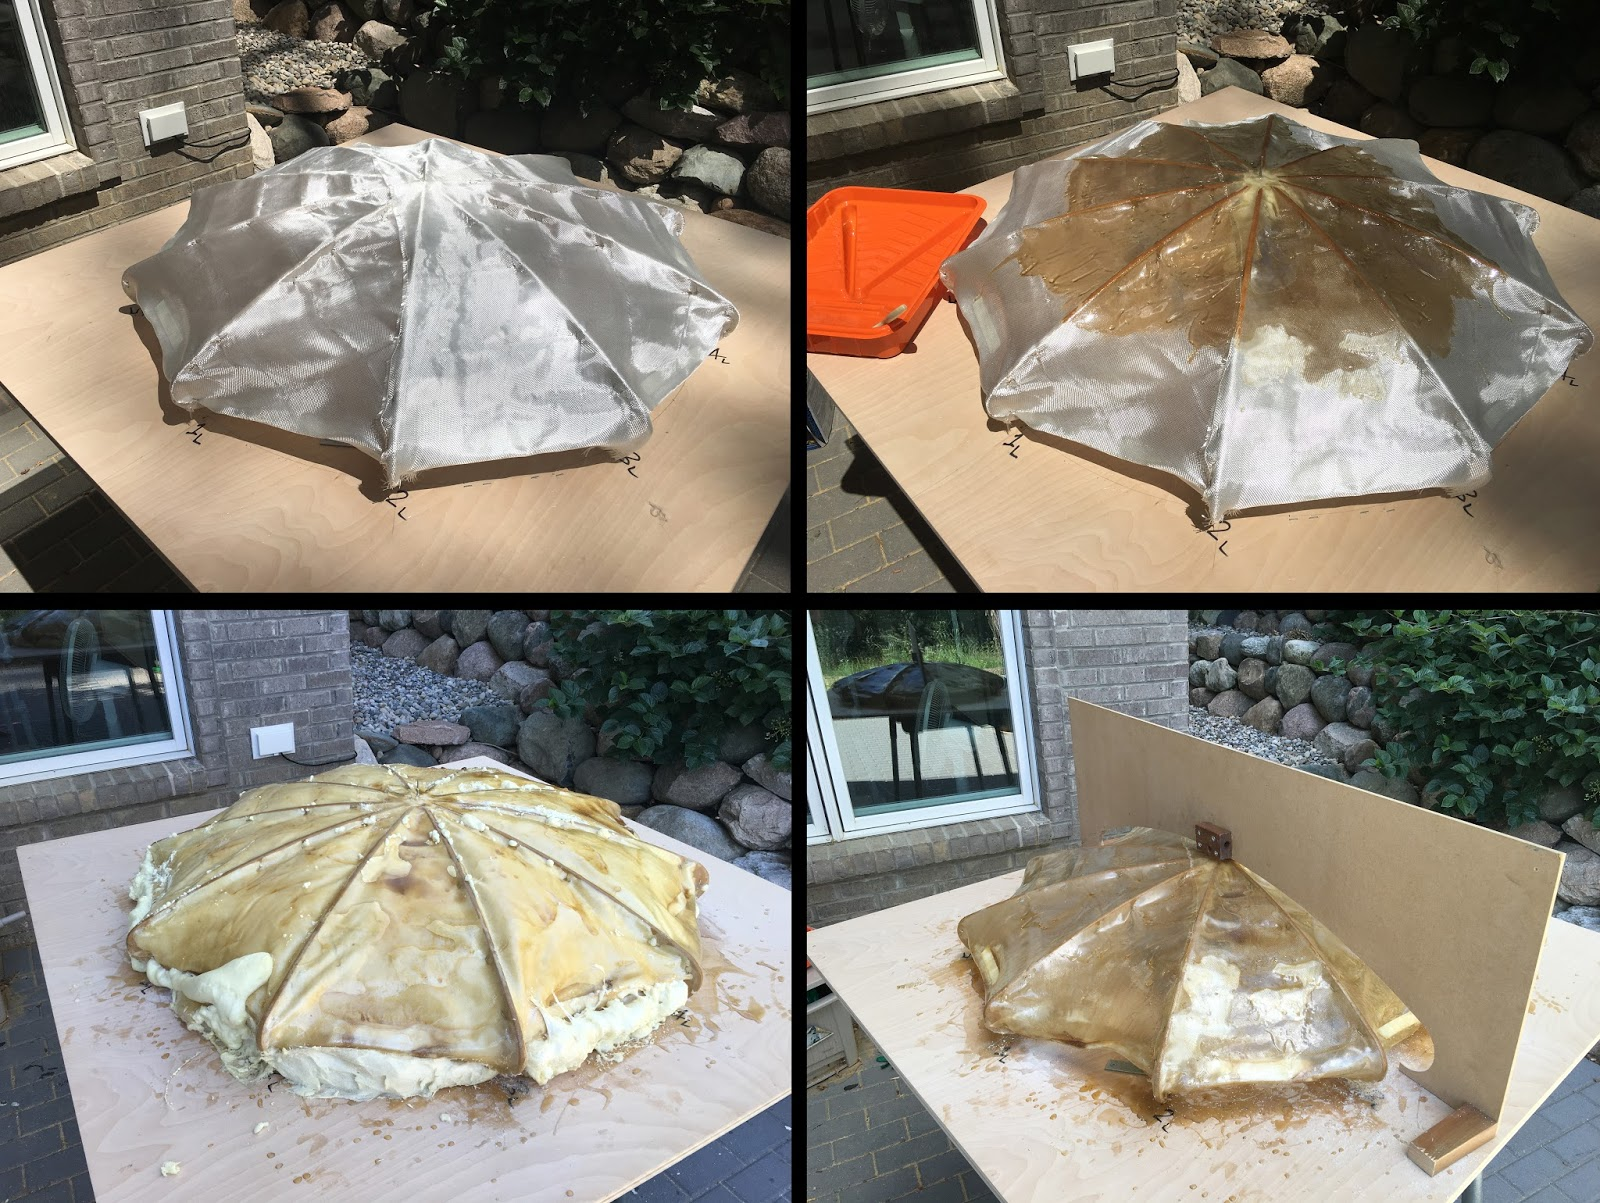 Clockwise from top left: (1) Laying fiberglass over wood cross-sections;  (2) Wetting out the glass with resin;  (3) Checking glass profile versus target profile;  (4) Filling out the volume with polyurethane.